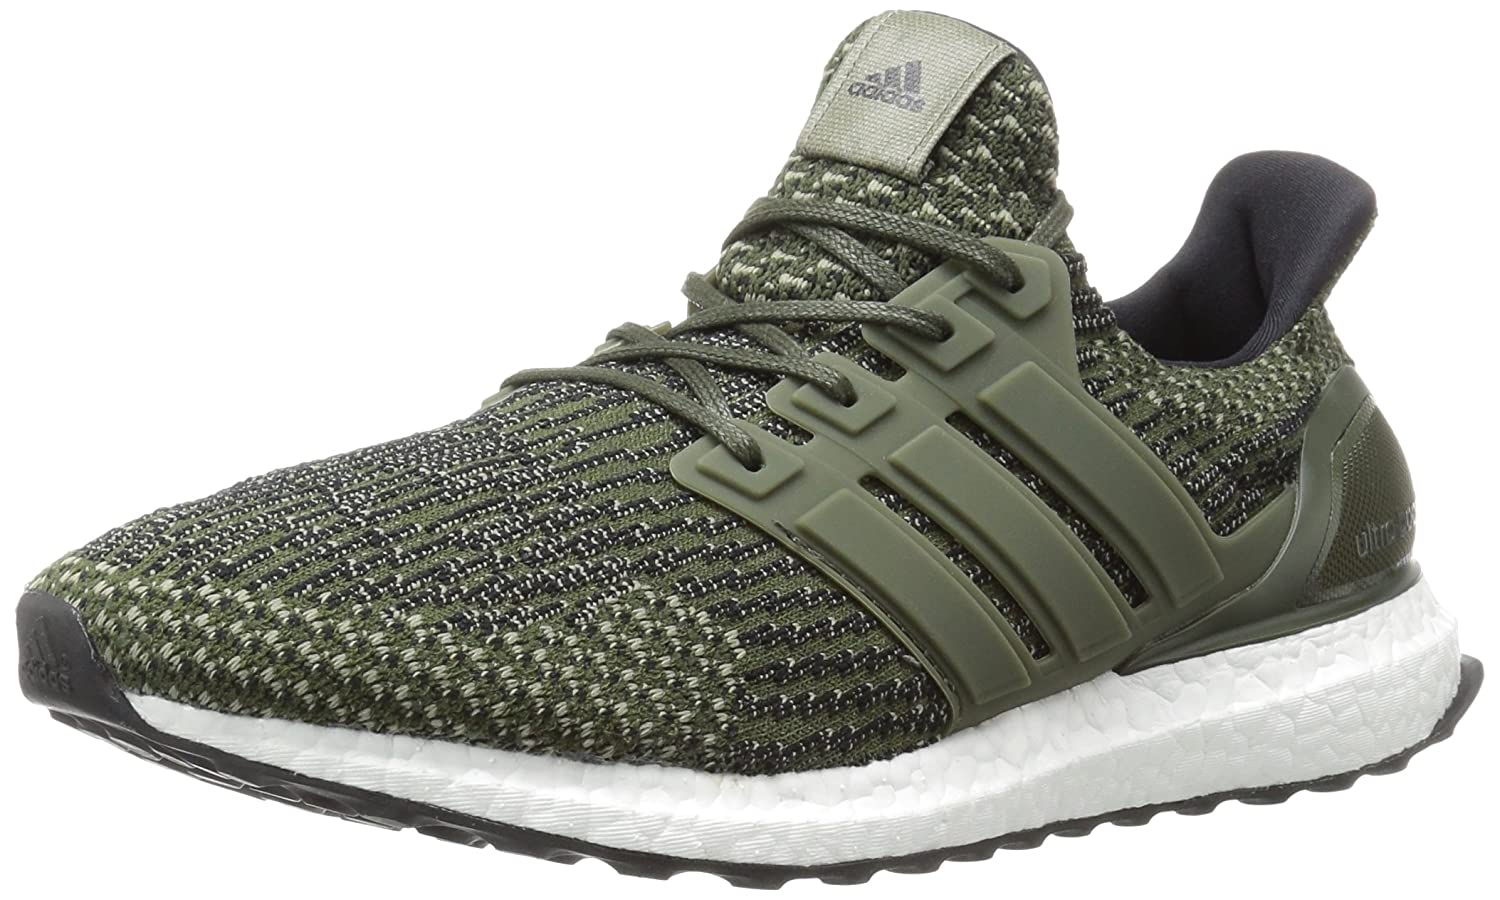 Utility Grey Utility Grey Trace Cargo Adidas Men's Ultraboost Ltd Running shoes